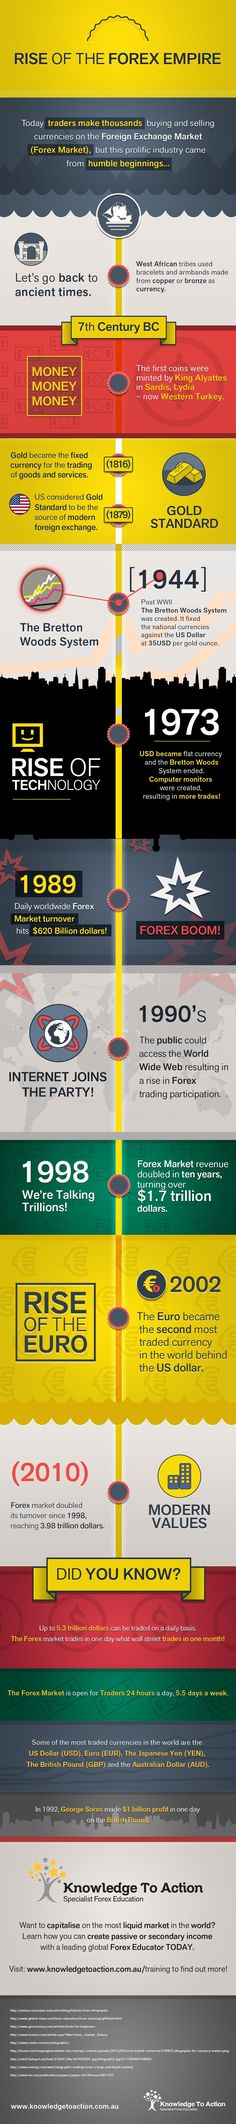 Infographic: Rise of the Forex Empire